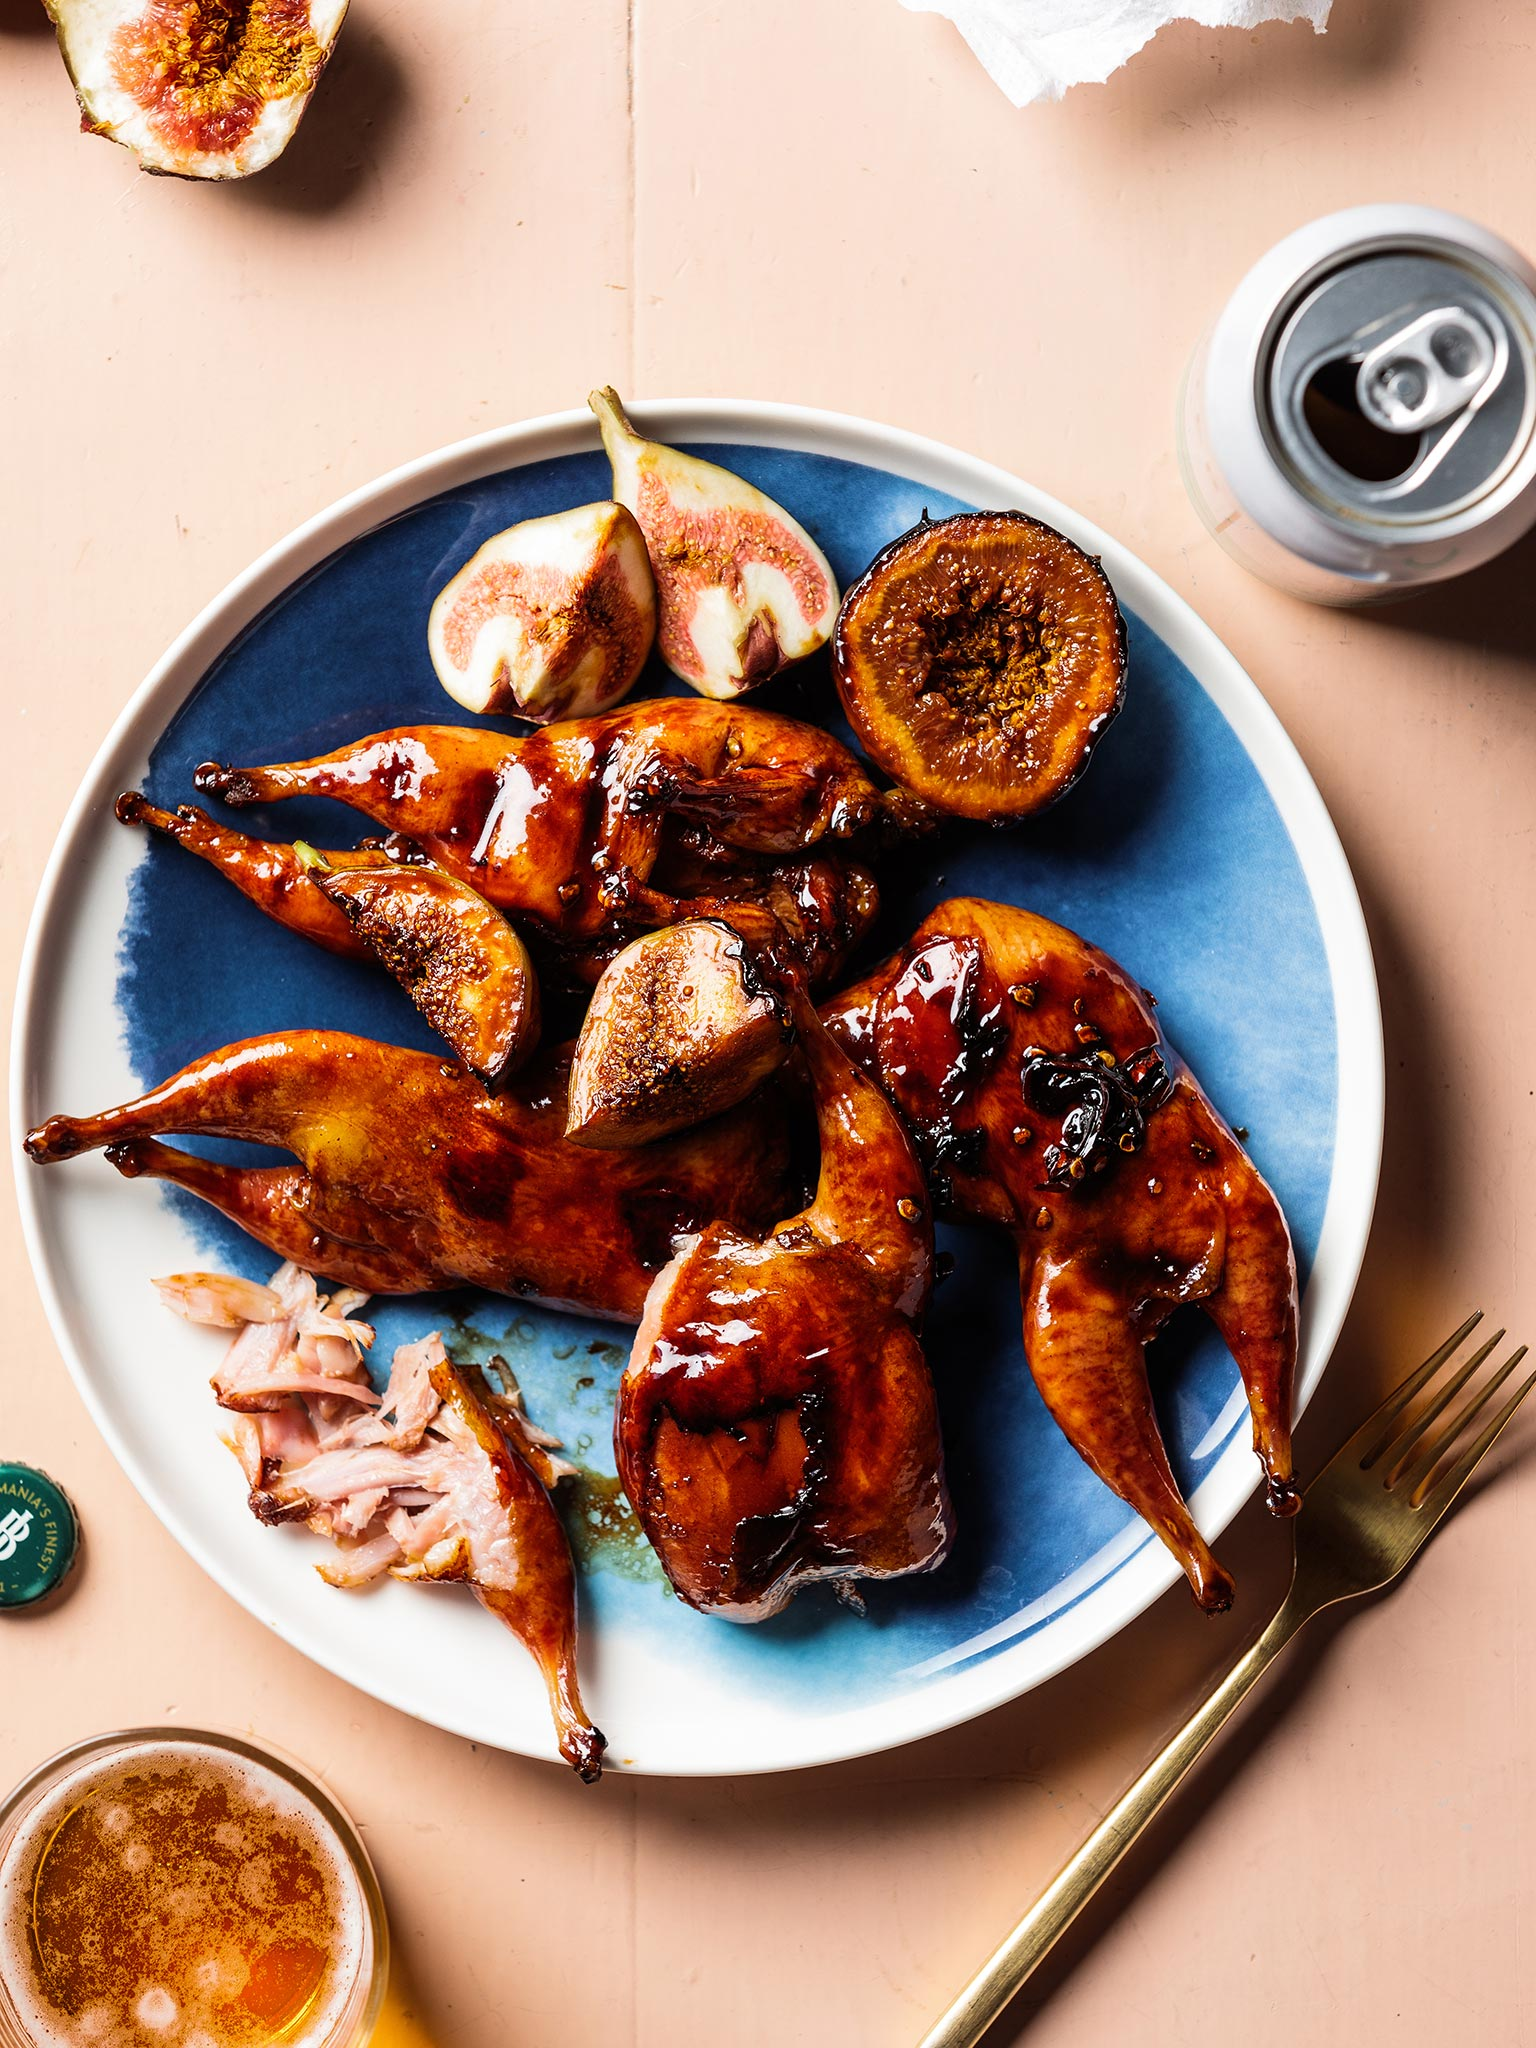 3-154-Ozpig-Barbecue-Quail-with-Balsamic-Glaze-web.jpg